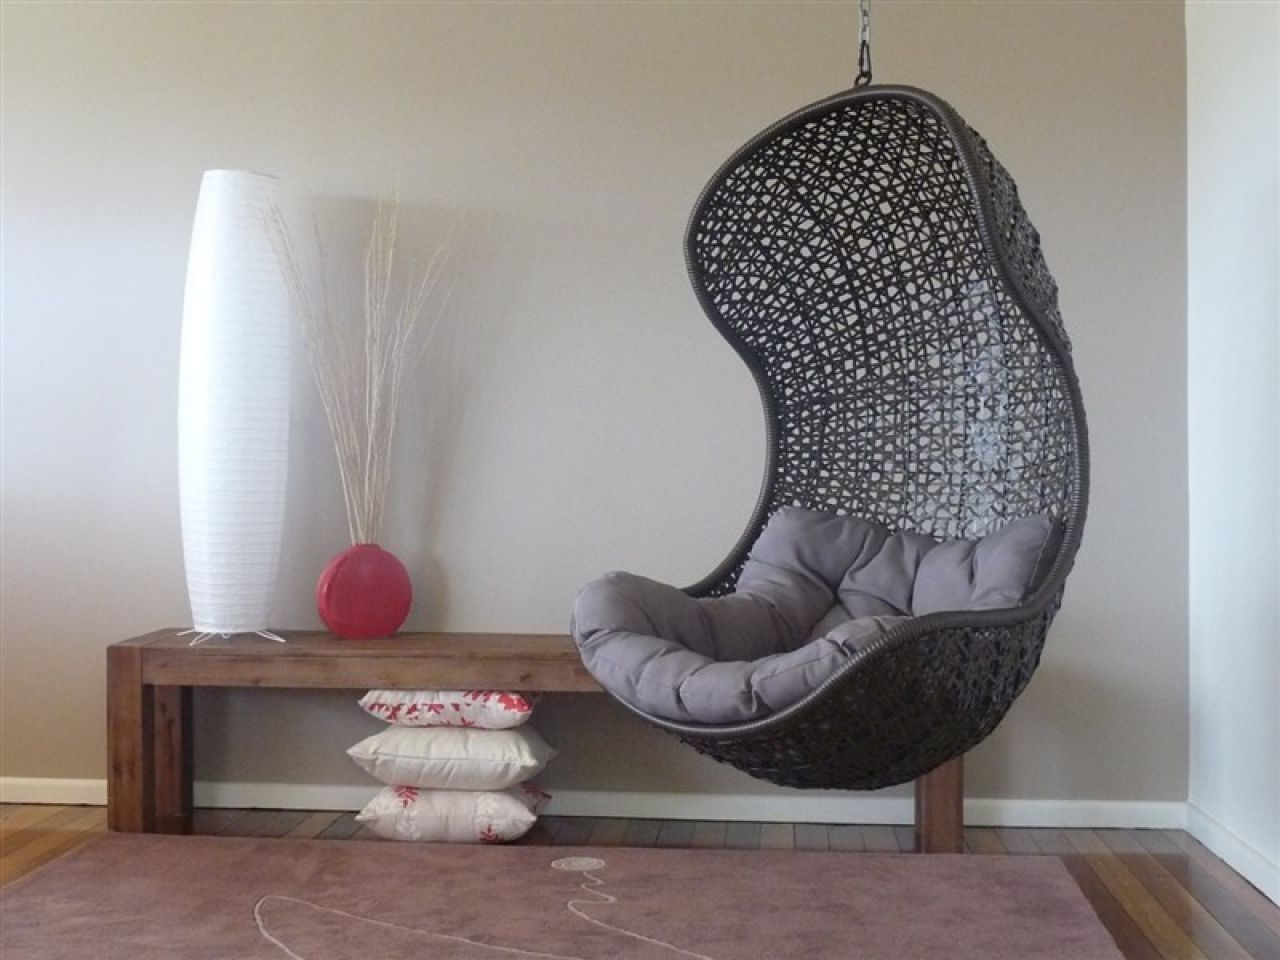 Cool Chairs For Bedroom. hanging chairs for bedrooms ikea swing chair bedroom designs artflyz cool